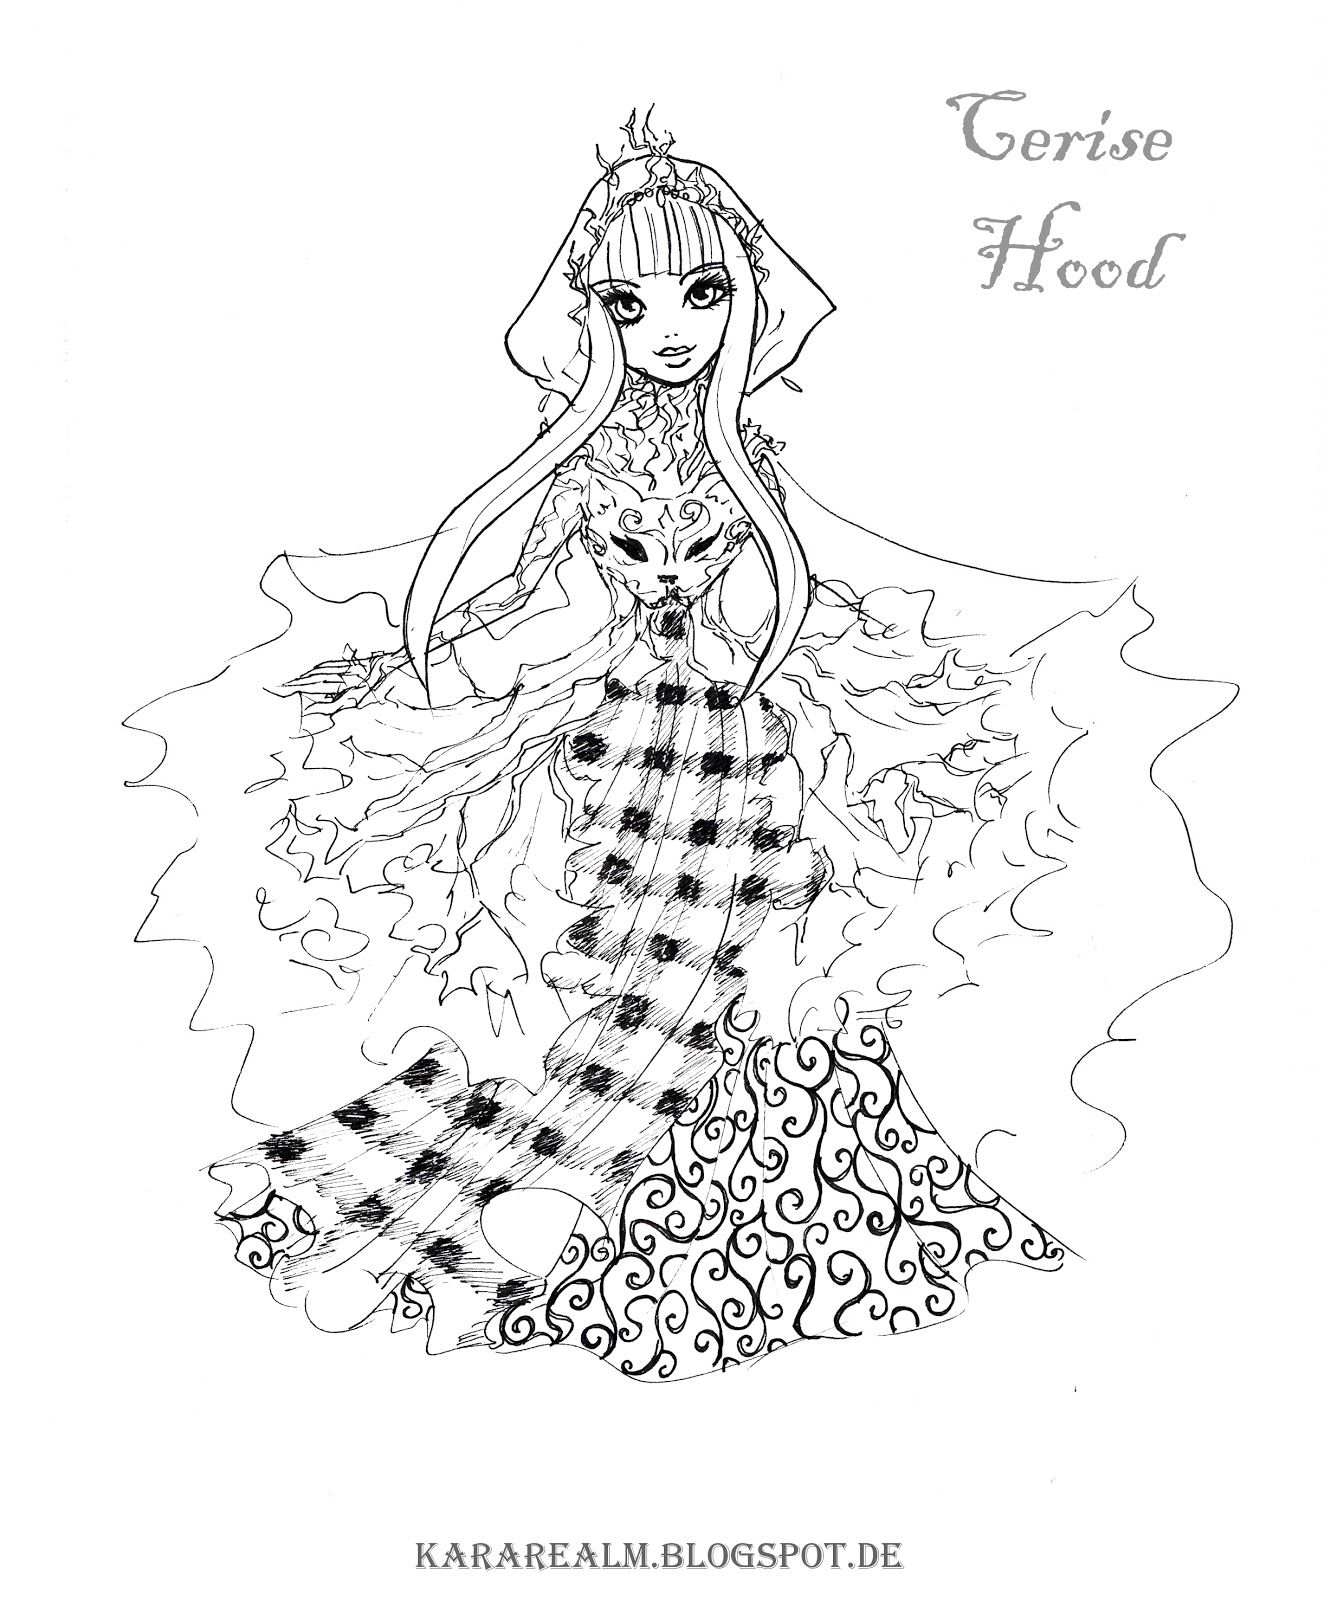 ever after high pictures kara realm ever after high coloring pages with images ever high pictures after